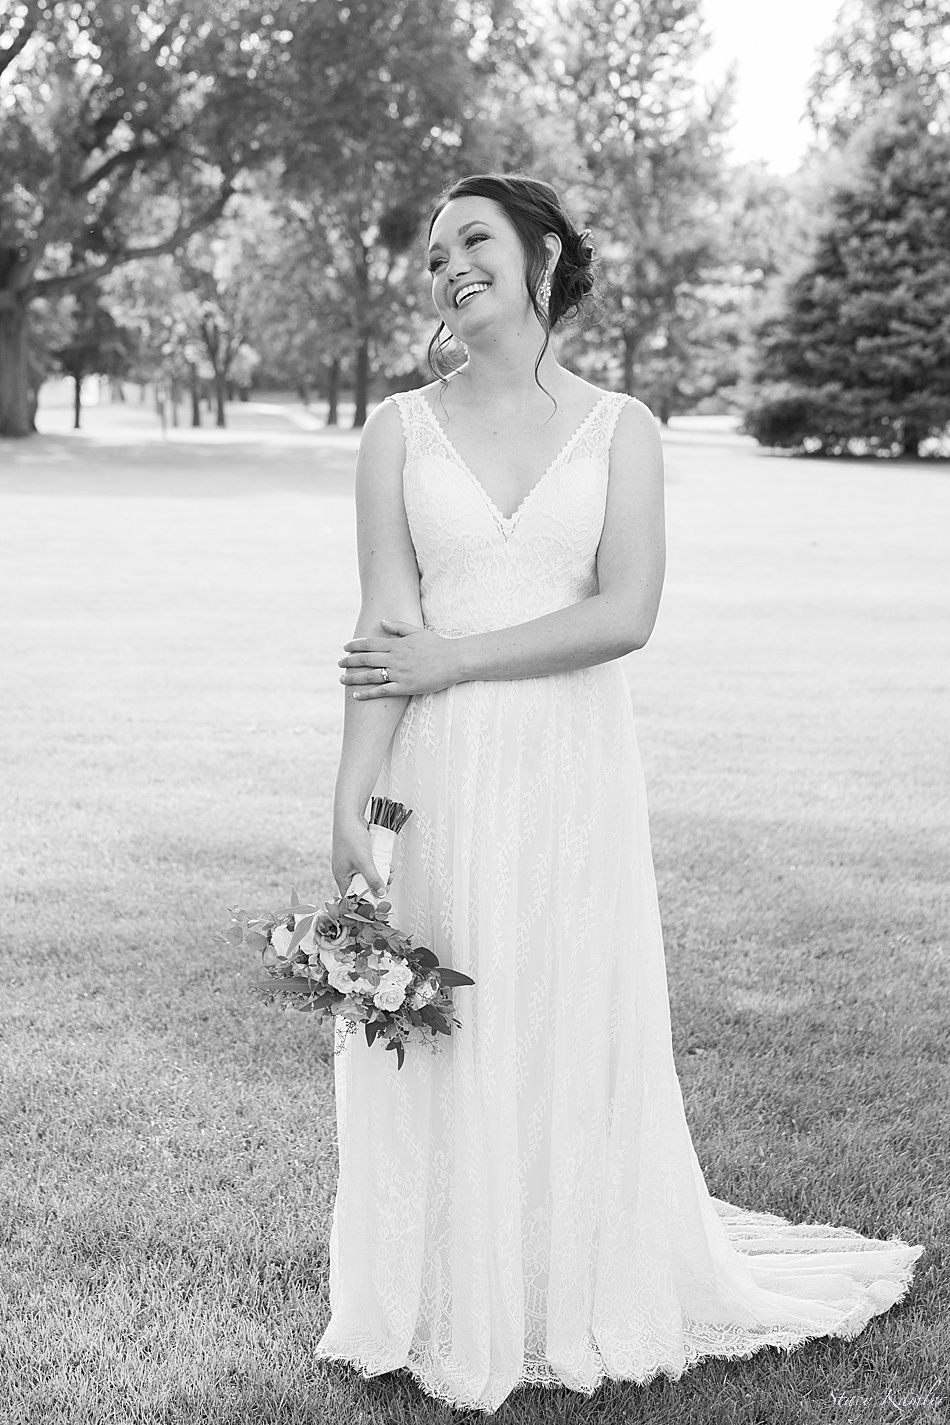 Bride laughing at the Groom